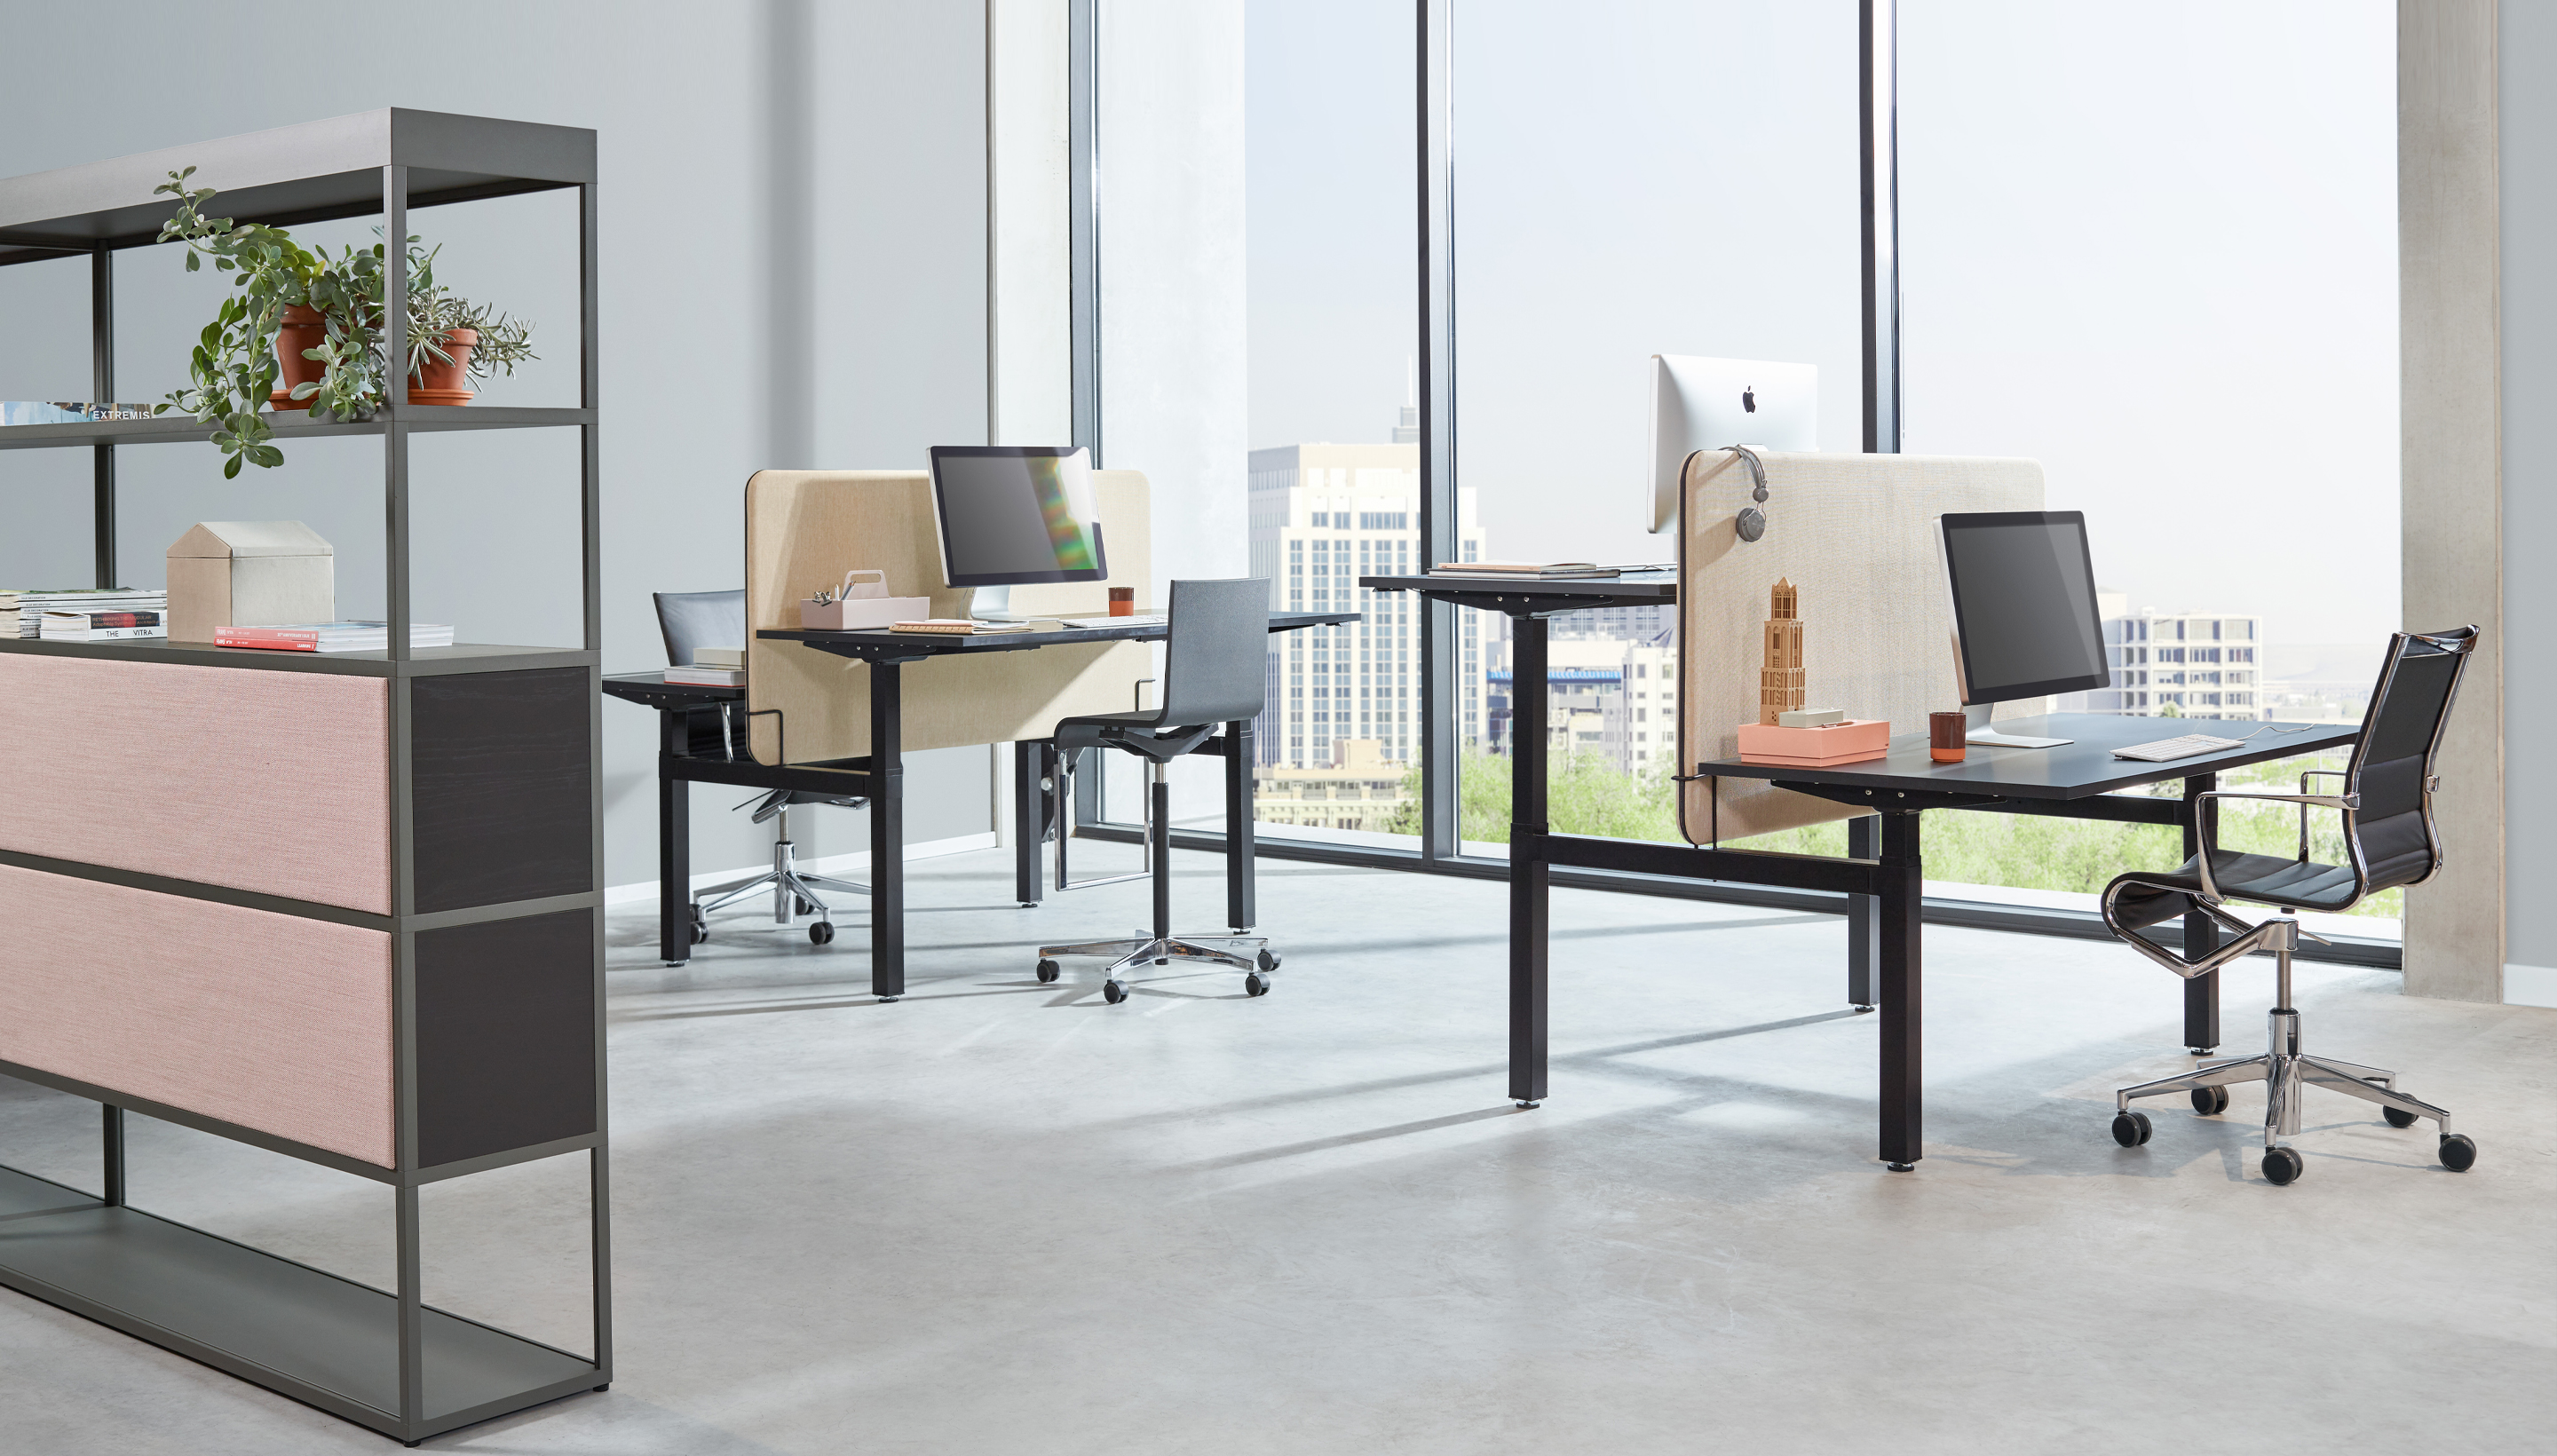 OUTLET | Workbrands Smart | Individual workstation | Crank adjustment | 160 x 80 cm